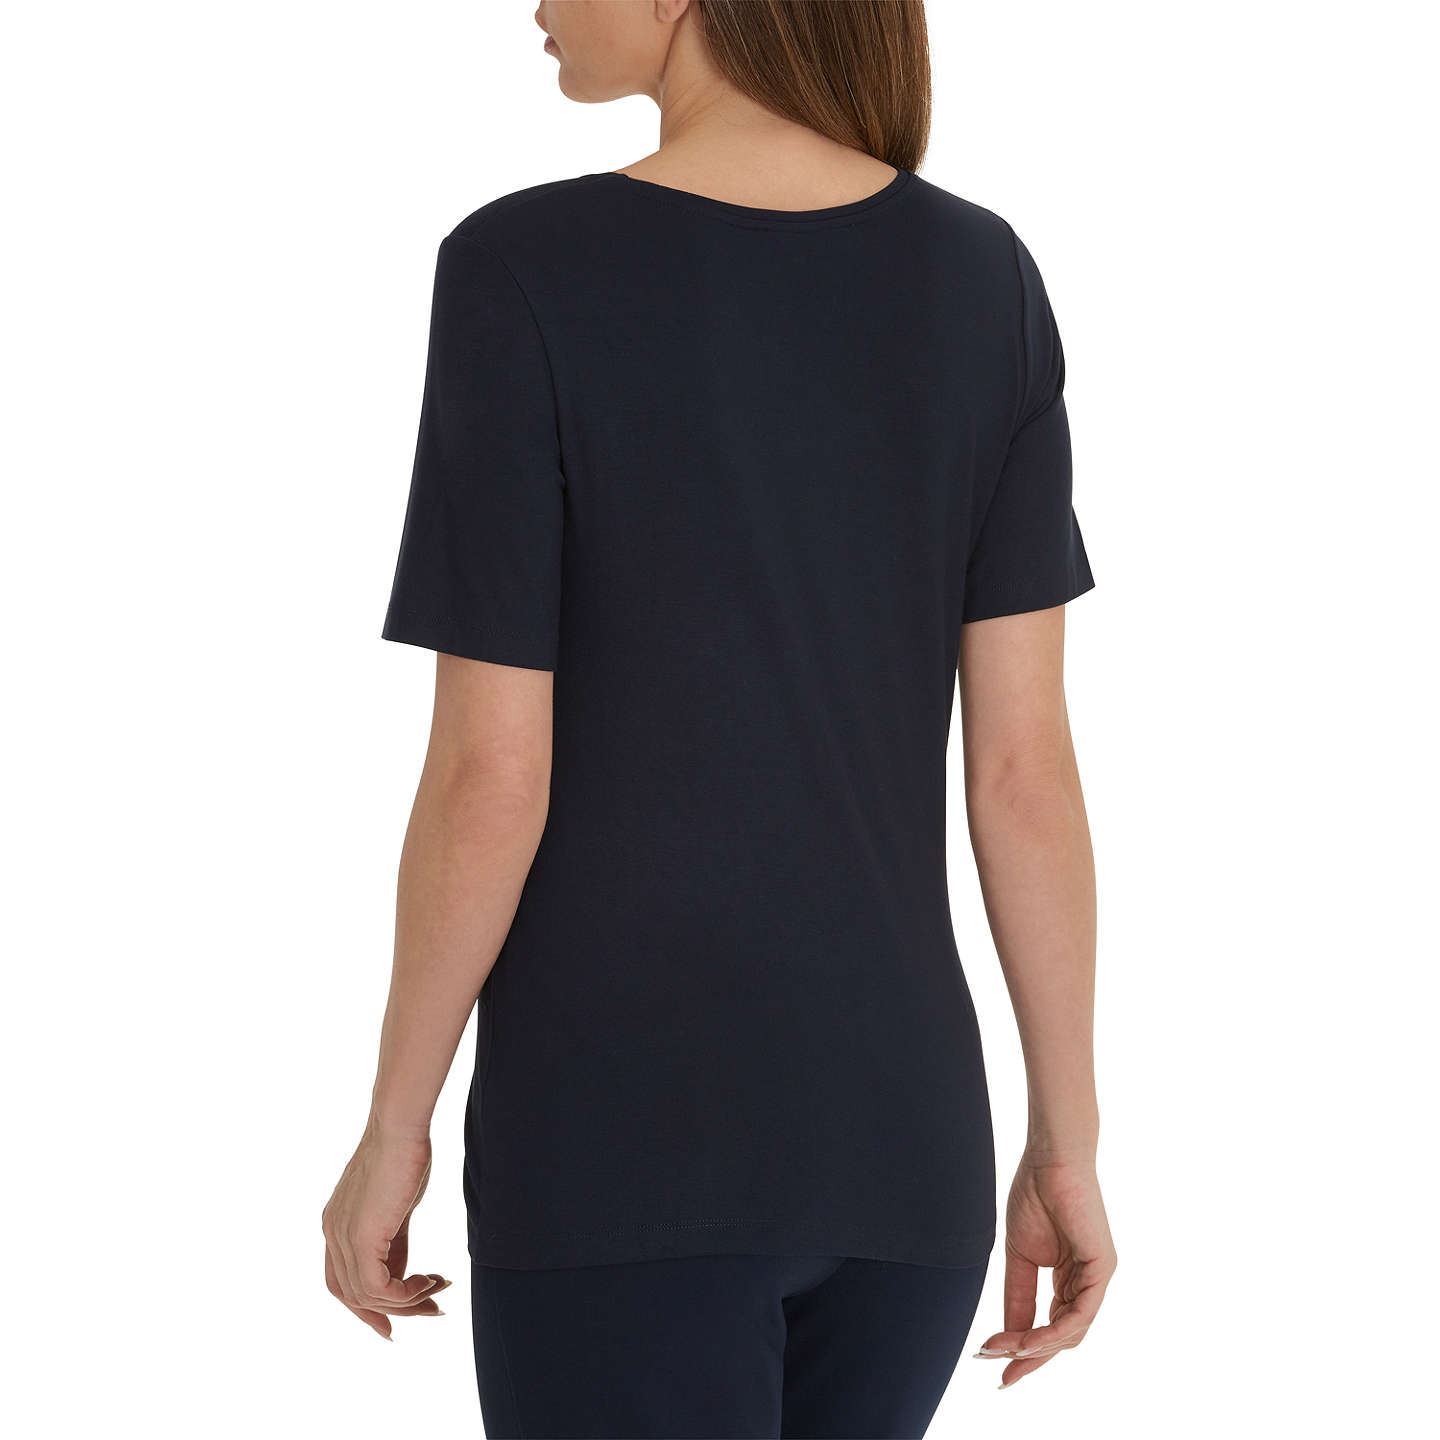 BuyBetty Barclay Embellished Round Neck Short Sleeve T-Shirt, Dark Sky, 10 Online at johnlewis.com